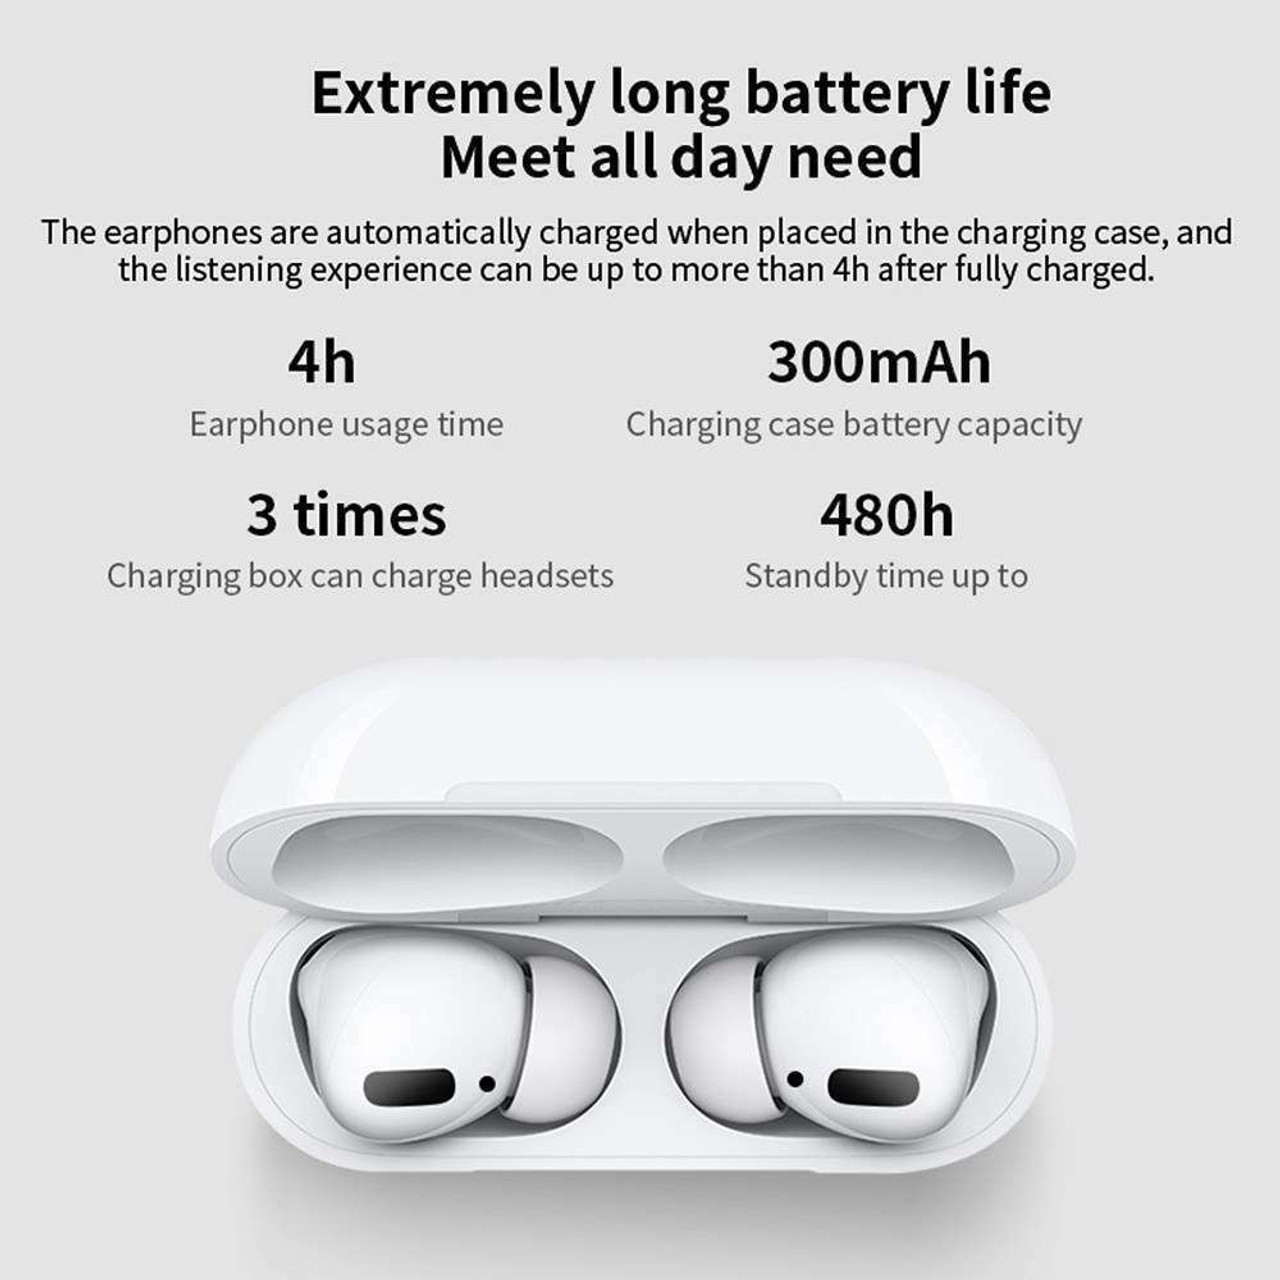 Airs Pro TWS Wireless Earphones BT 5.0 Smart Touch Earbuds Work with Siri PK i90000 i12 Pod 2